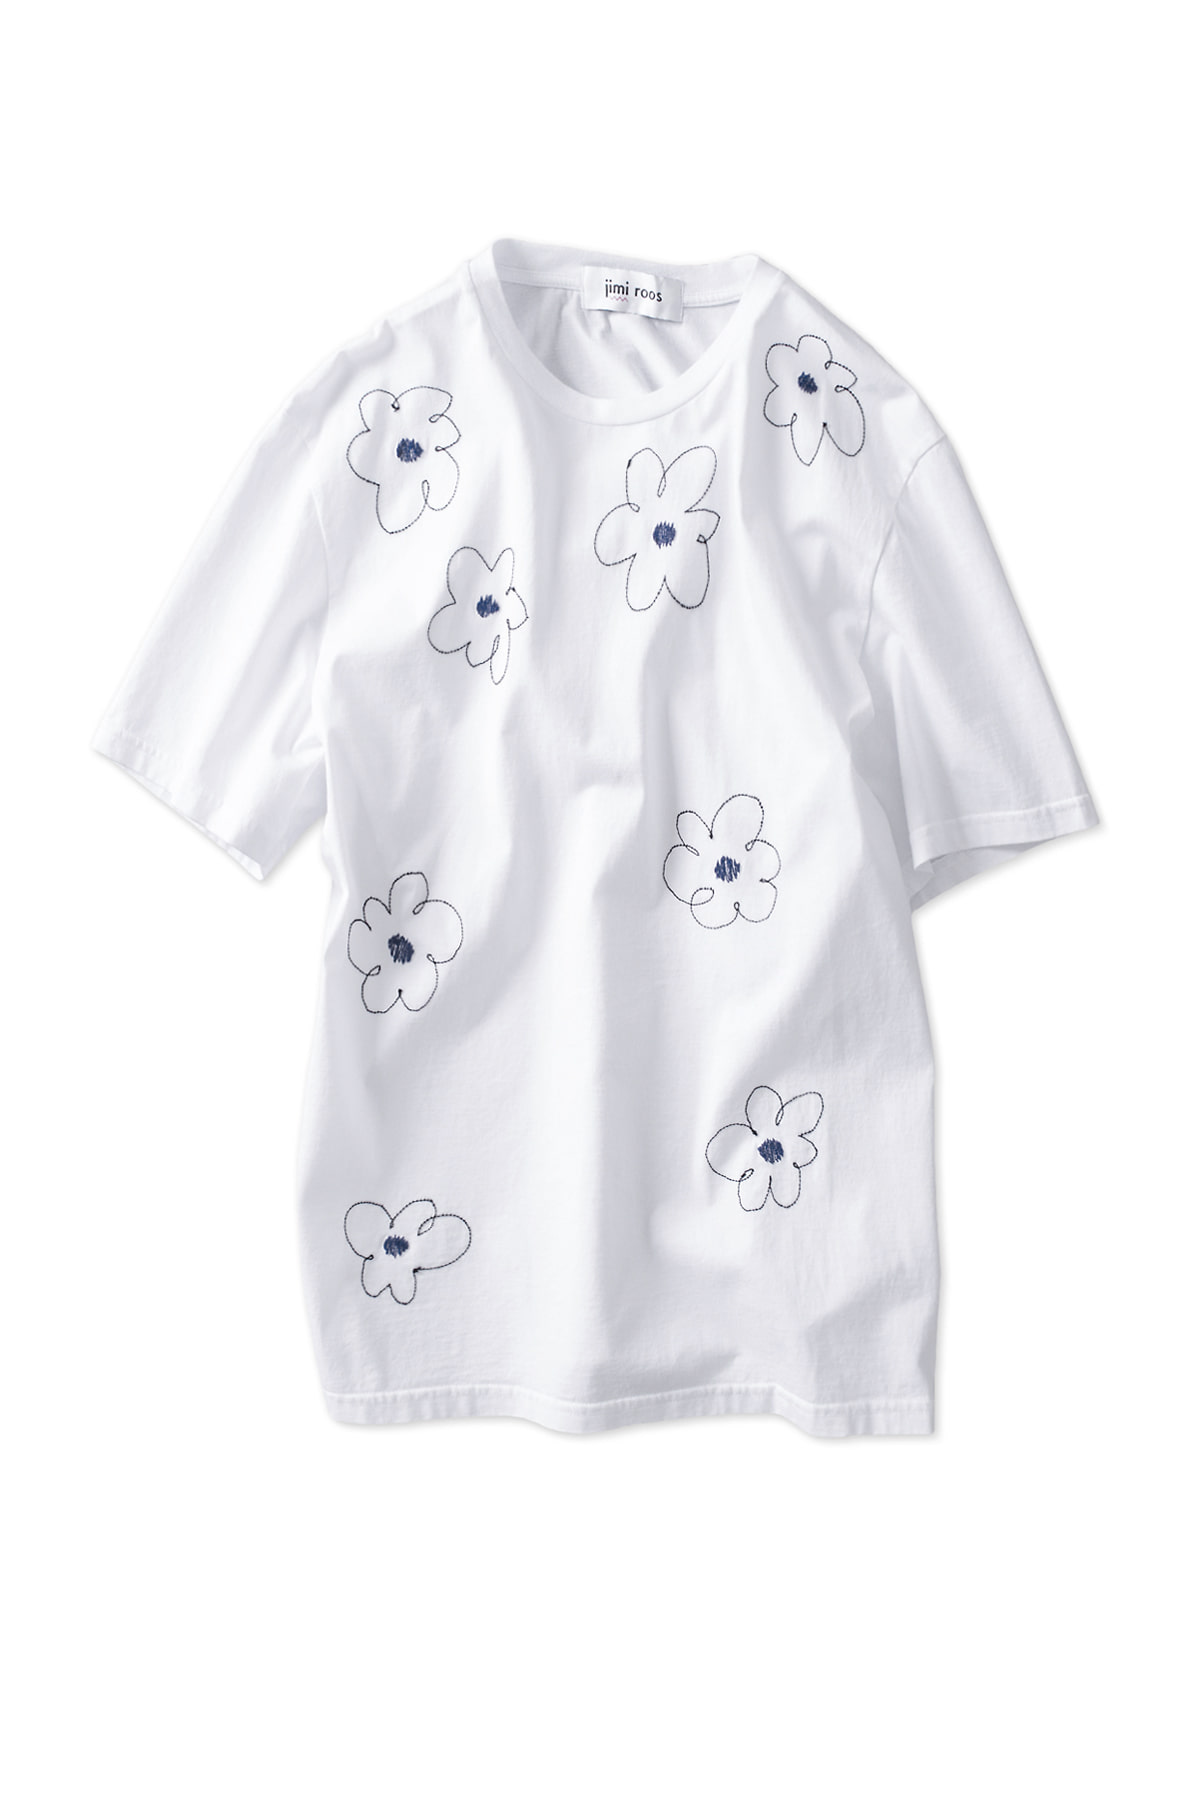 jimi roos : Flower T-Shirt (White)